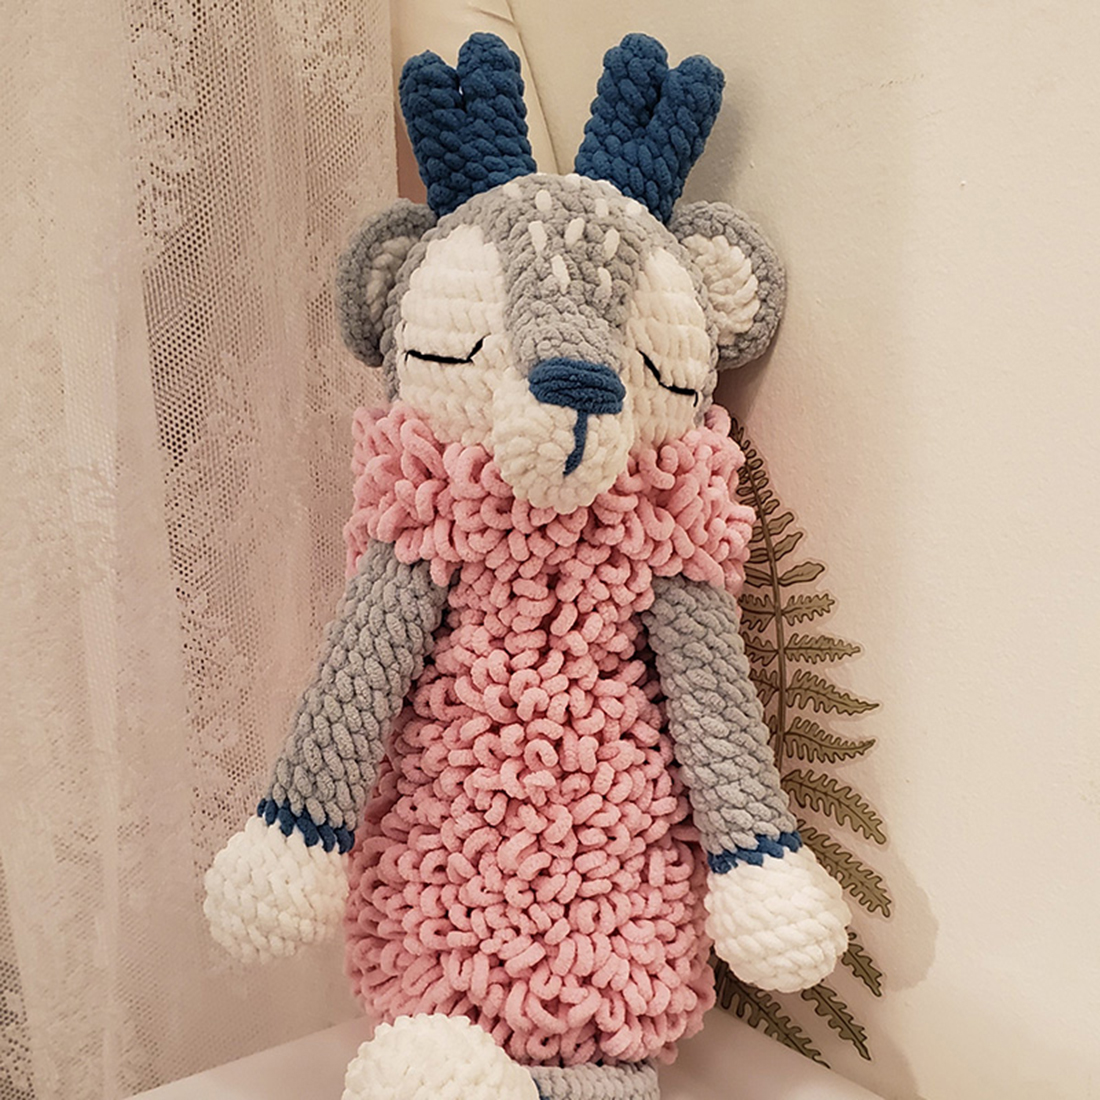 DIY Hand Knitted Cute Wool Doll Handmade Crochet Doll Non Finished Poked Kit - Silver Pink Deer